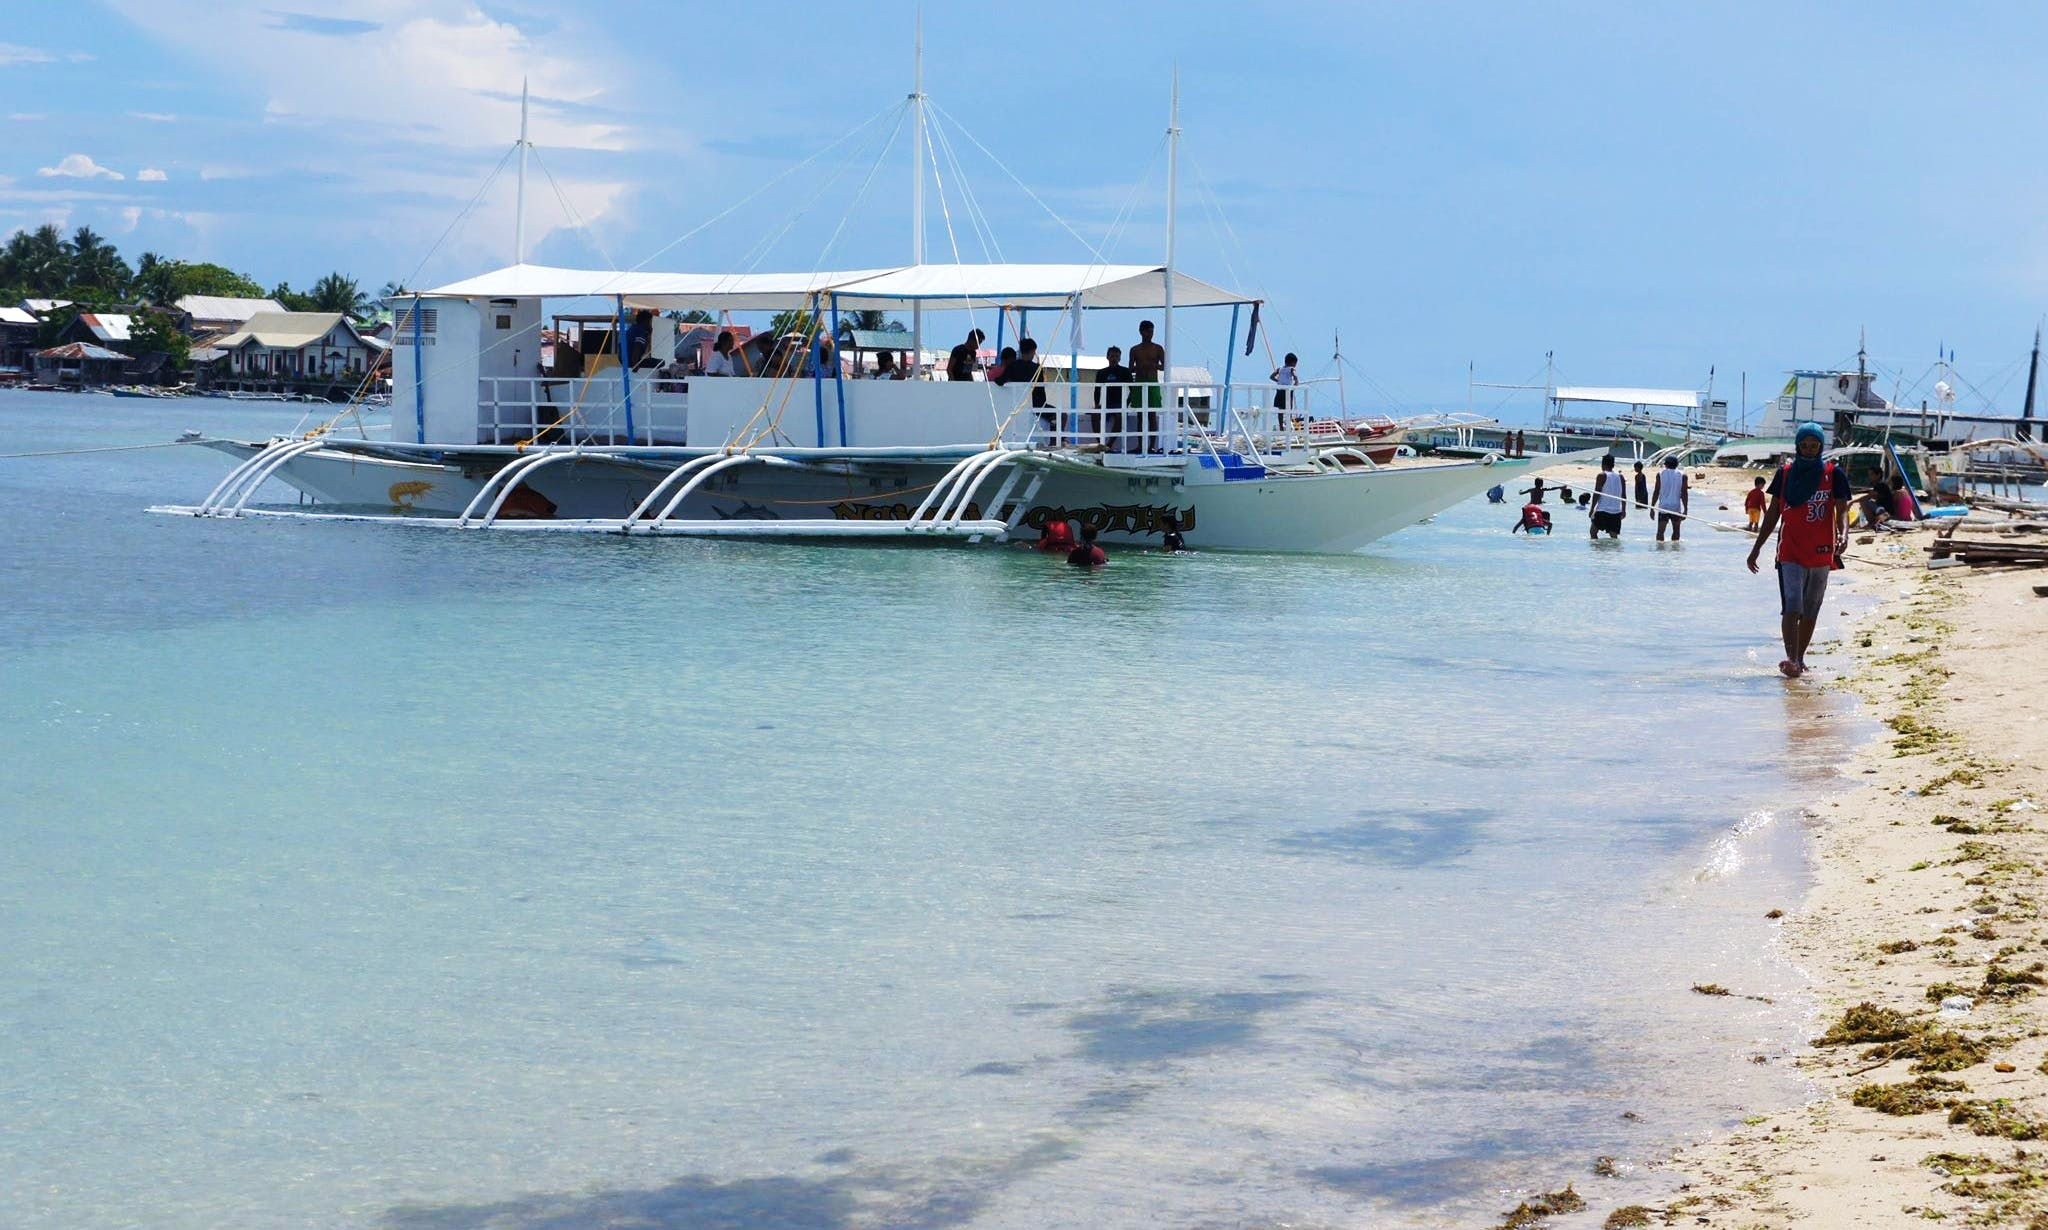 Traditional Passenger Boat Rental for Up to 30 People in Cordova, Philippines